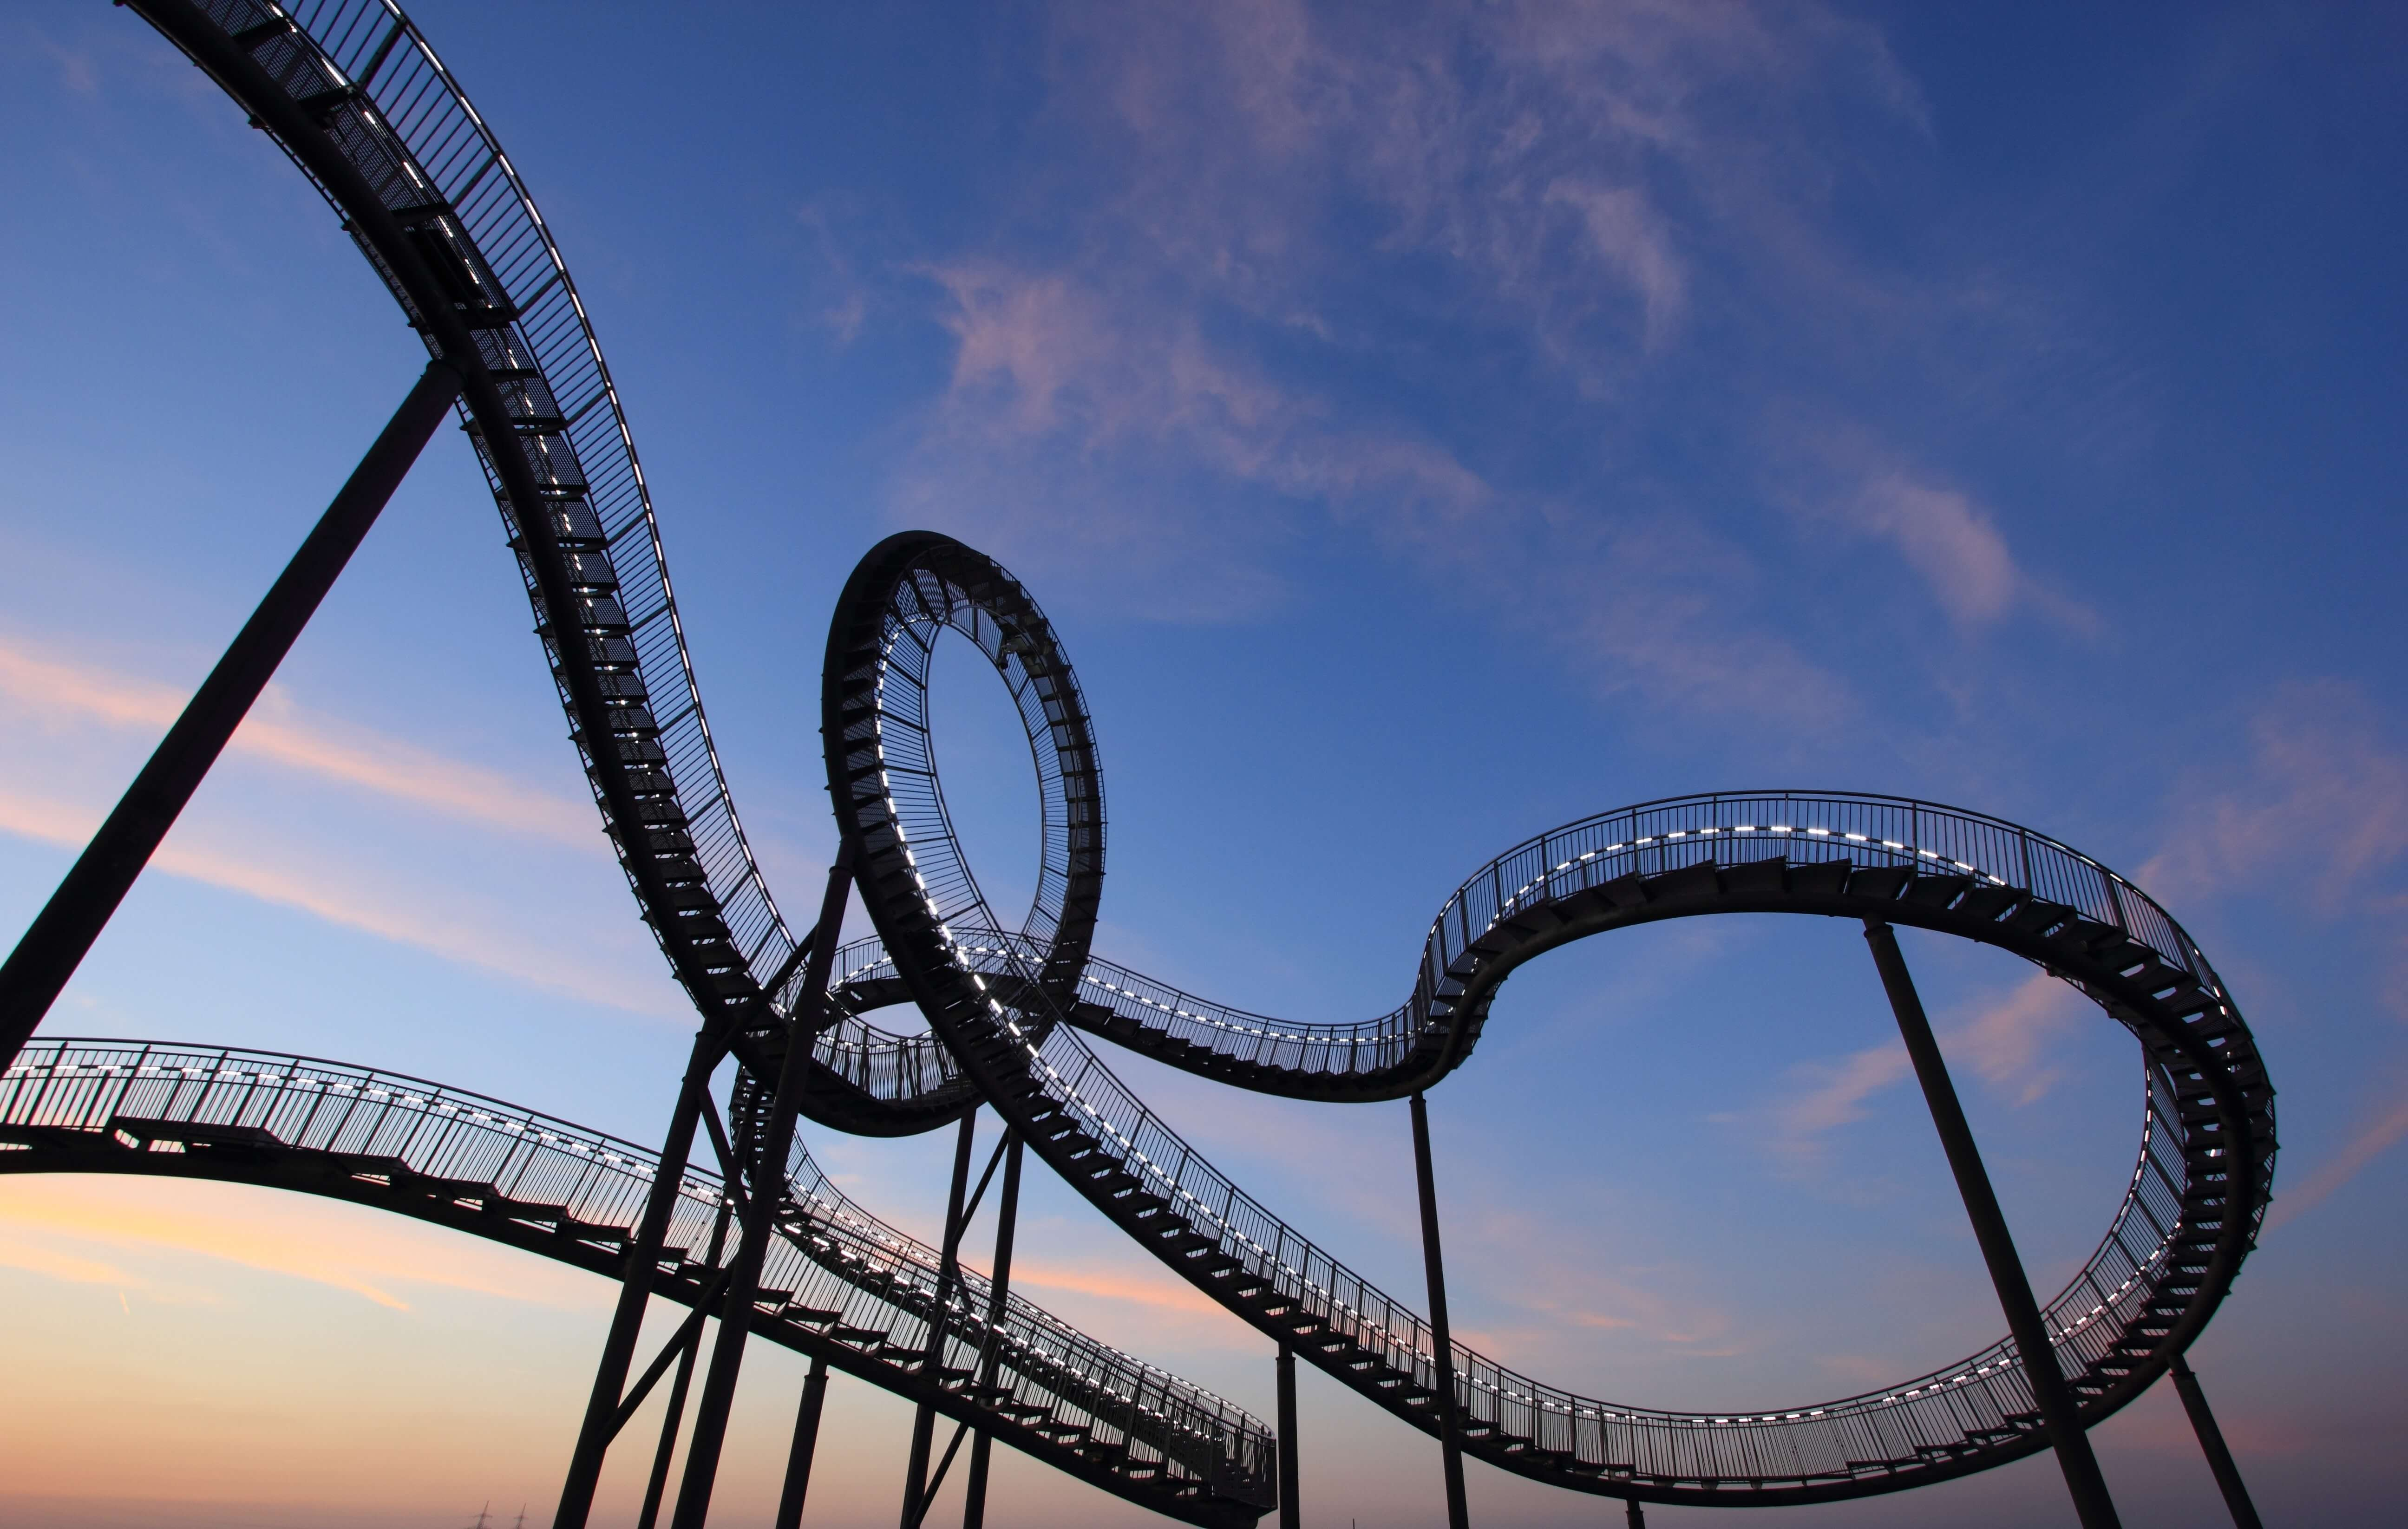 picture of a roller coaster with lots of twists and turns.